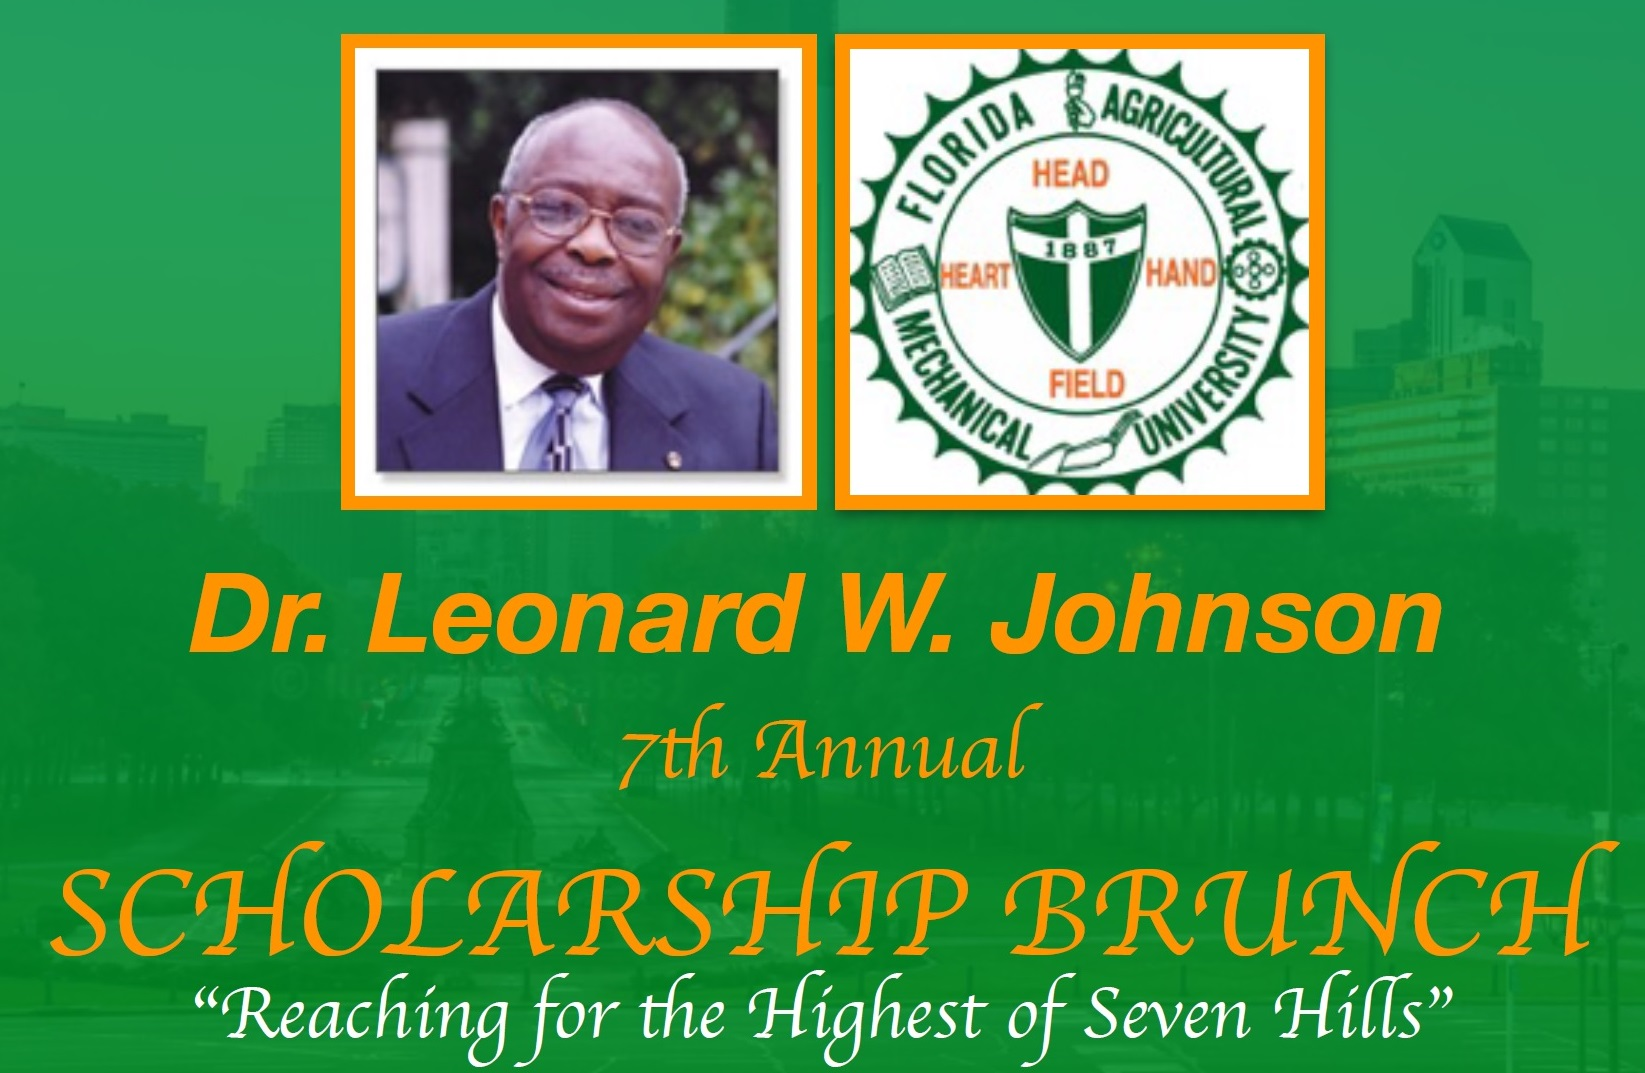 7th Annual Dr. Leonard W. Johnson Scholarship Brunch